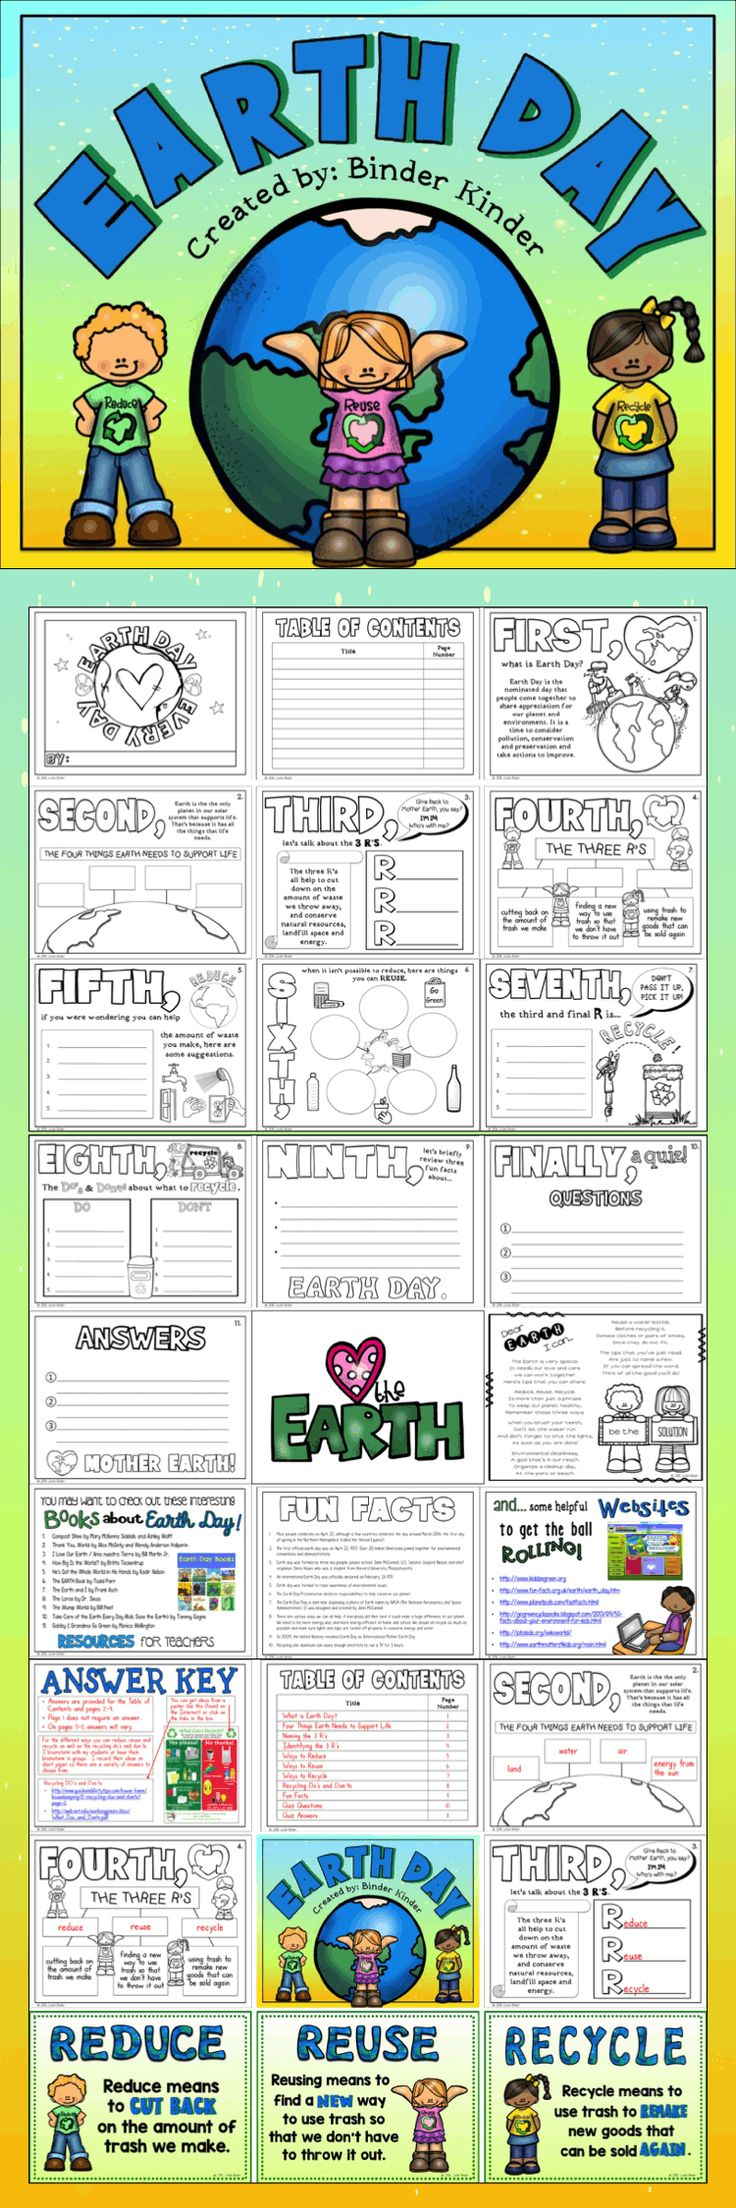 Earth Day DIY Informational Text Book What's Included-Book, 3 Poster, Poem, Answer Key, Book and website suggestions.